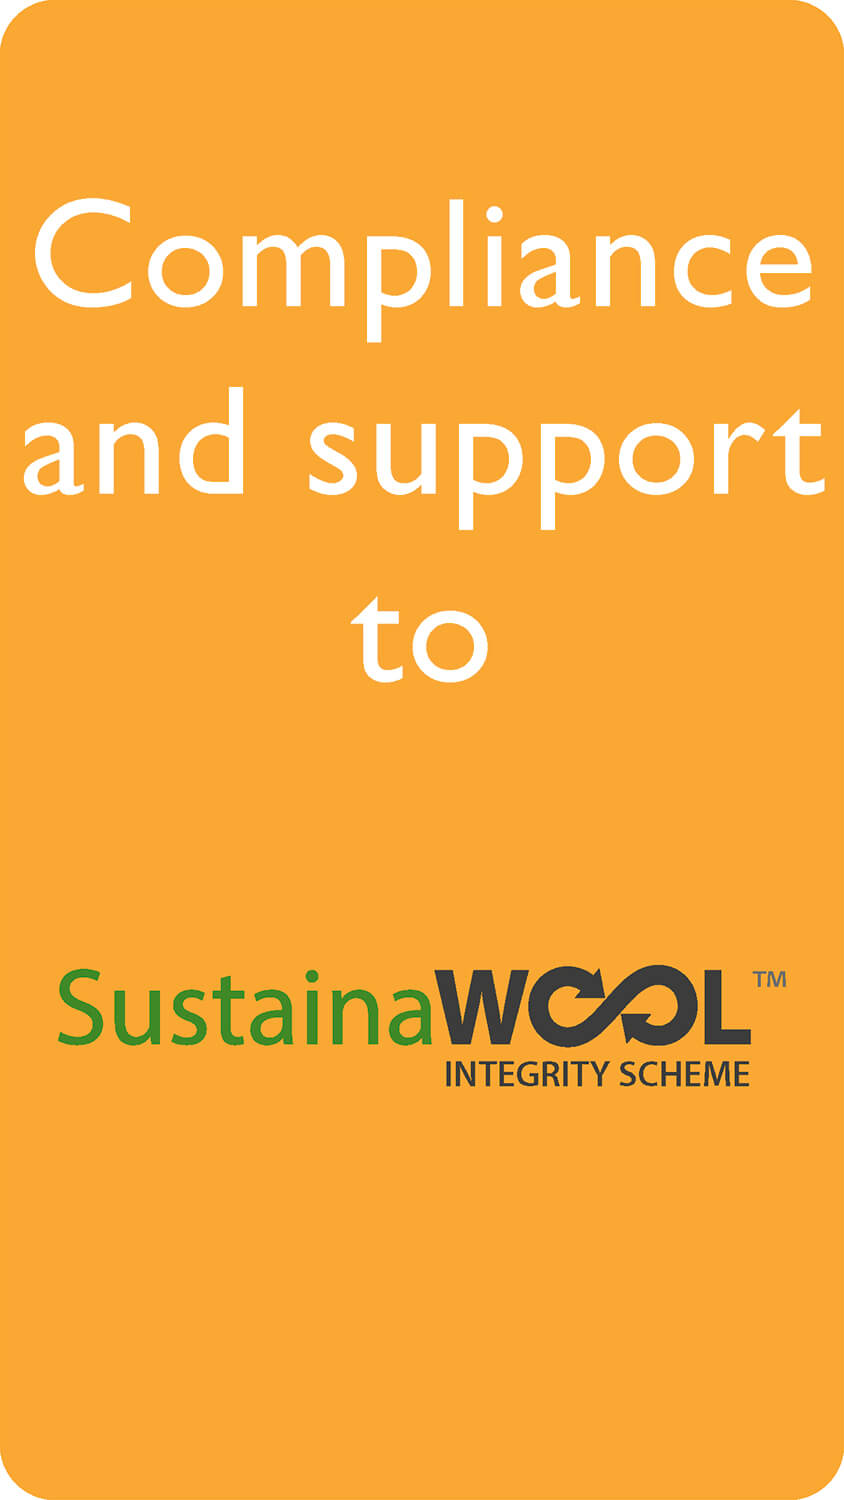 Compliance and support to SustanaiWOOL protocol